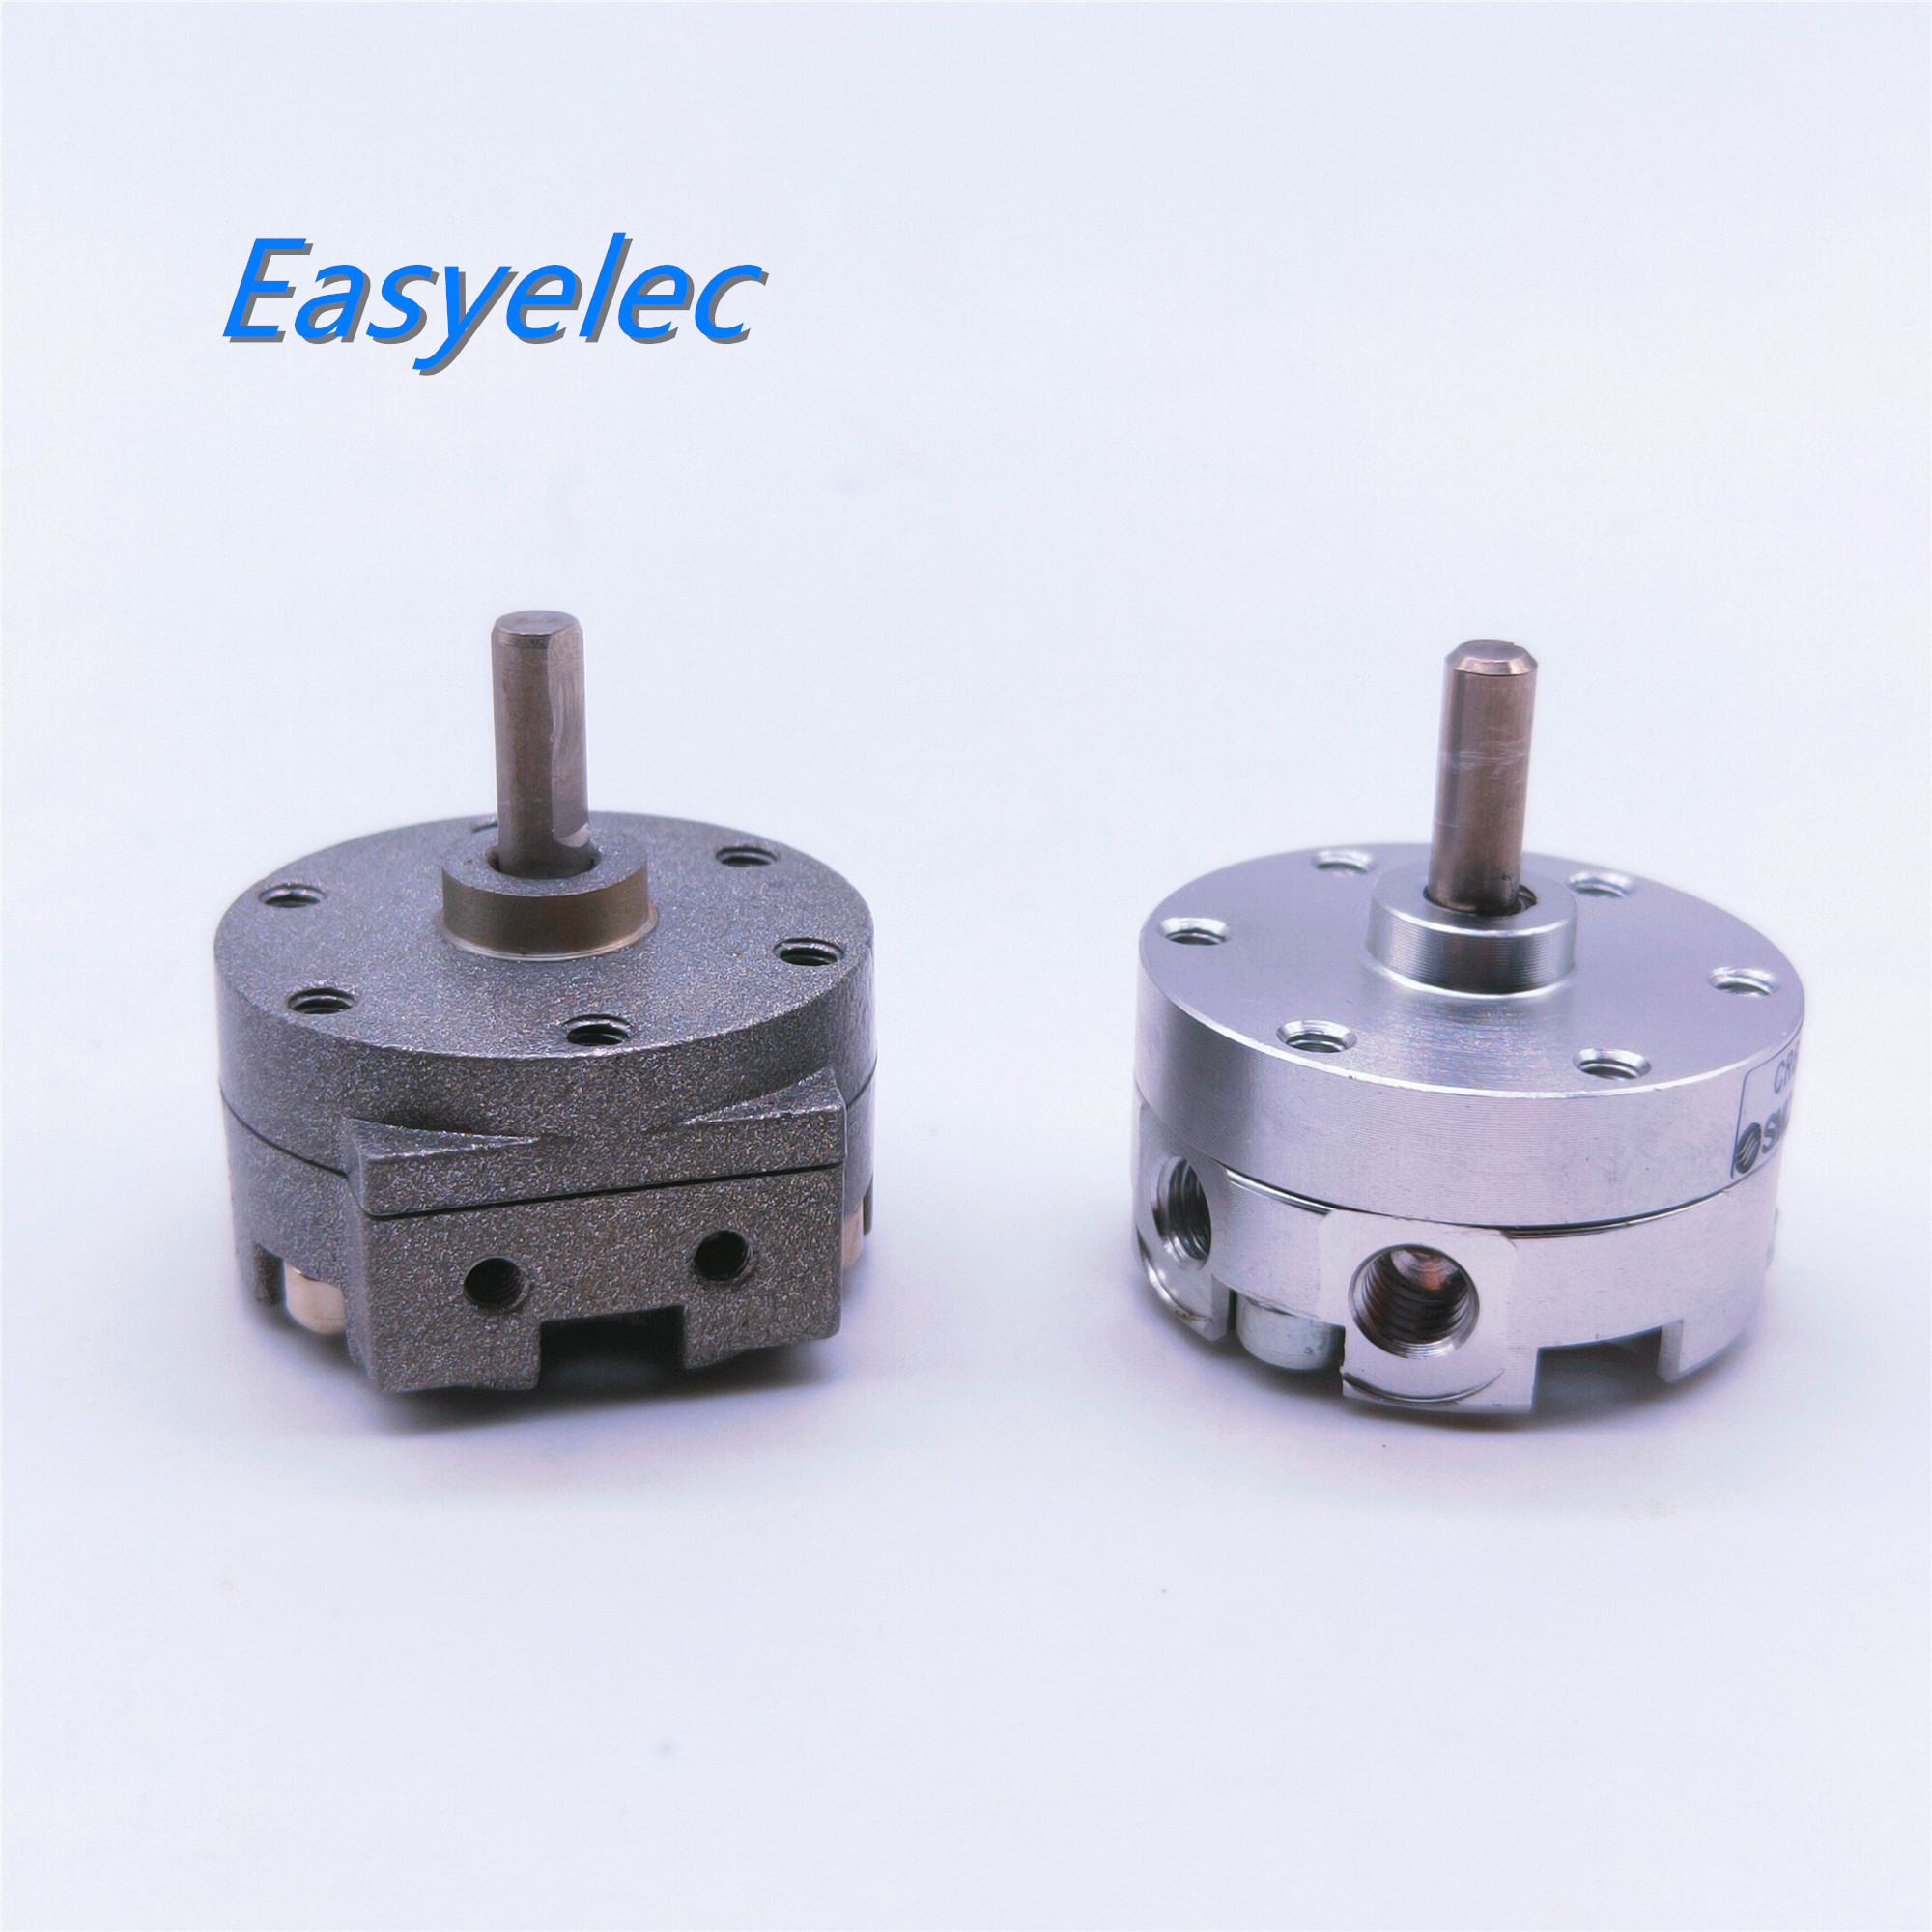 CRB2BS Pneumatic Rotary Actuator Rotary Cylinder Single Shaft CRB2BS10-15-20-30-40-90SZ-180SZ-270SZ